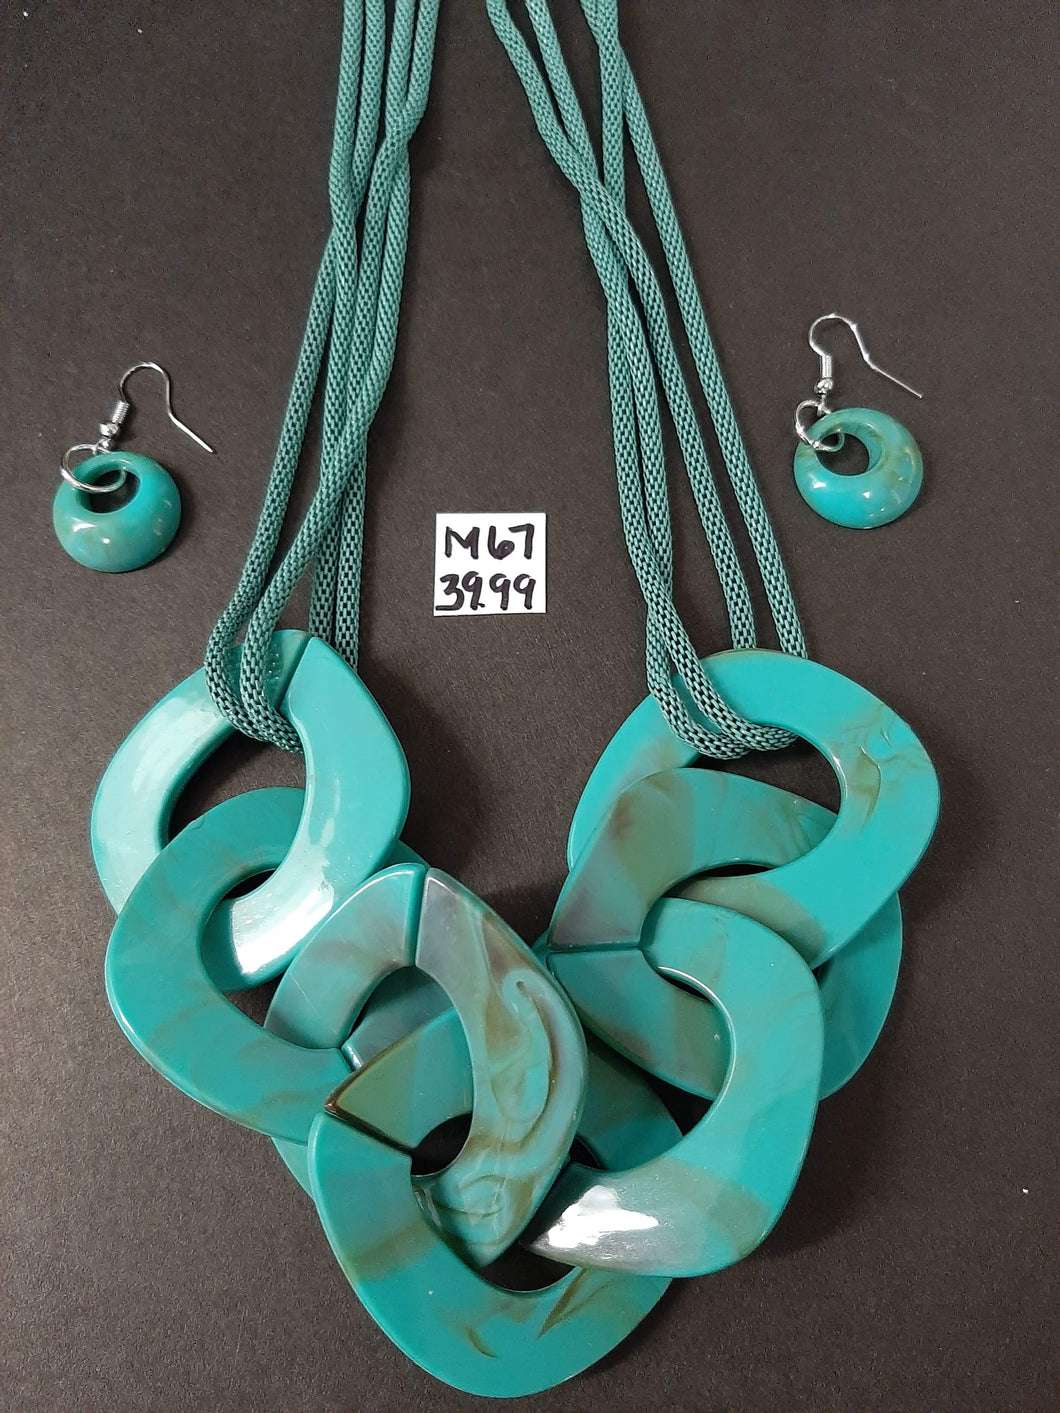 Necklace & Earring Set M67